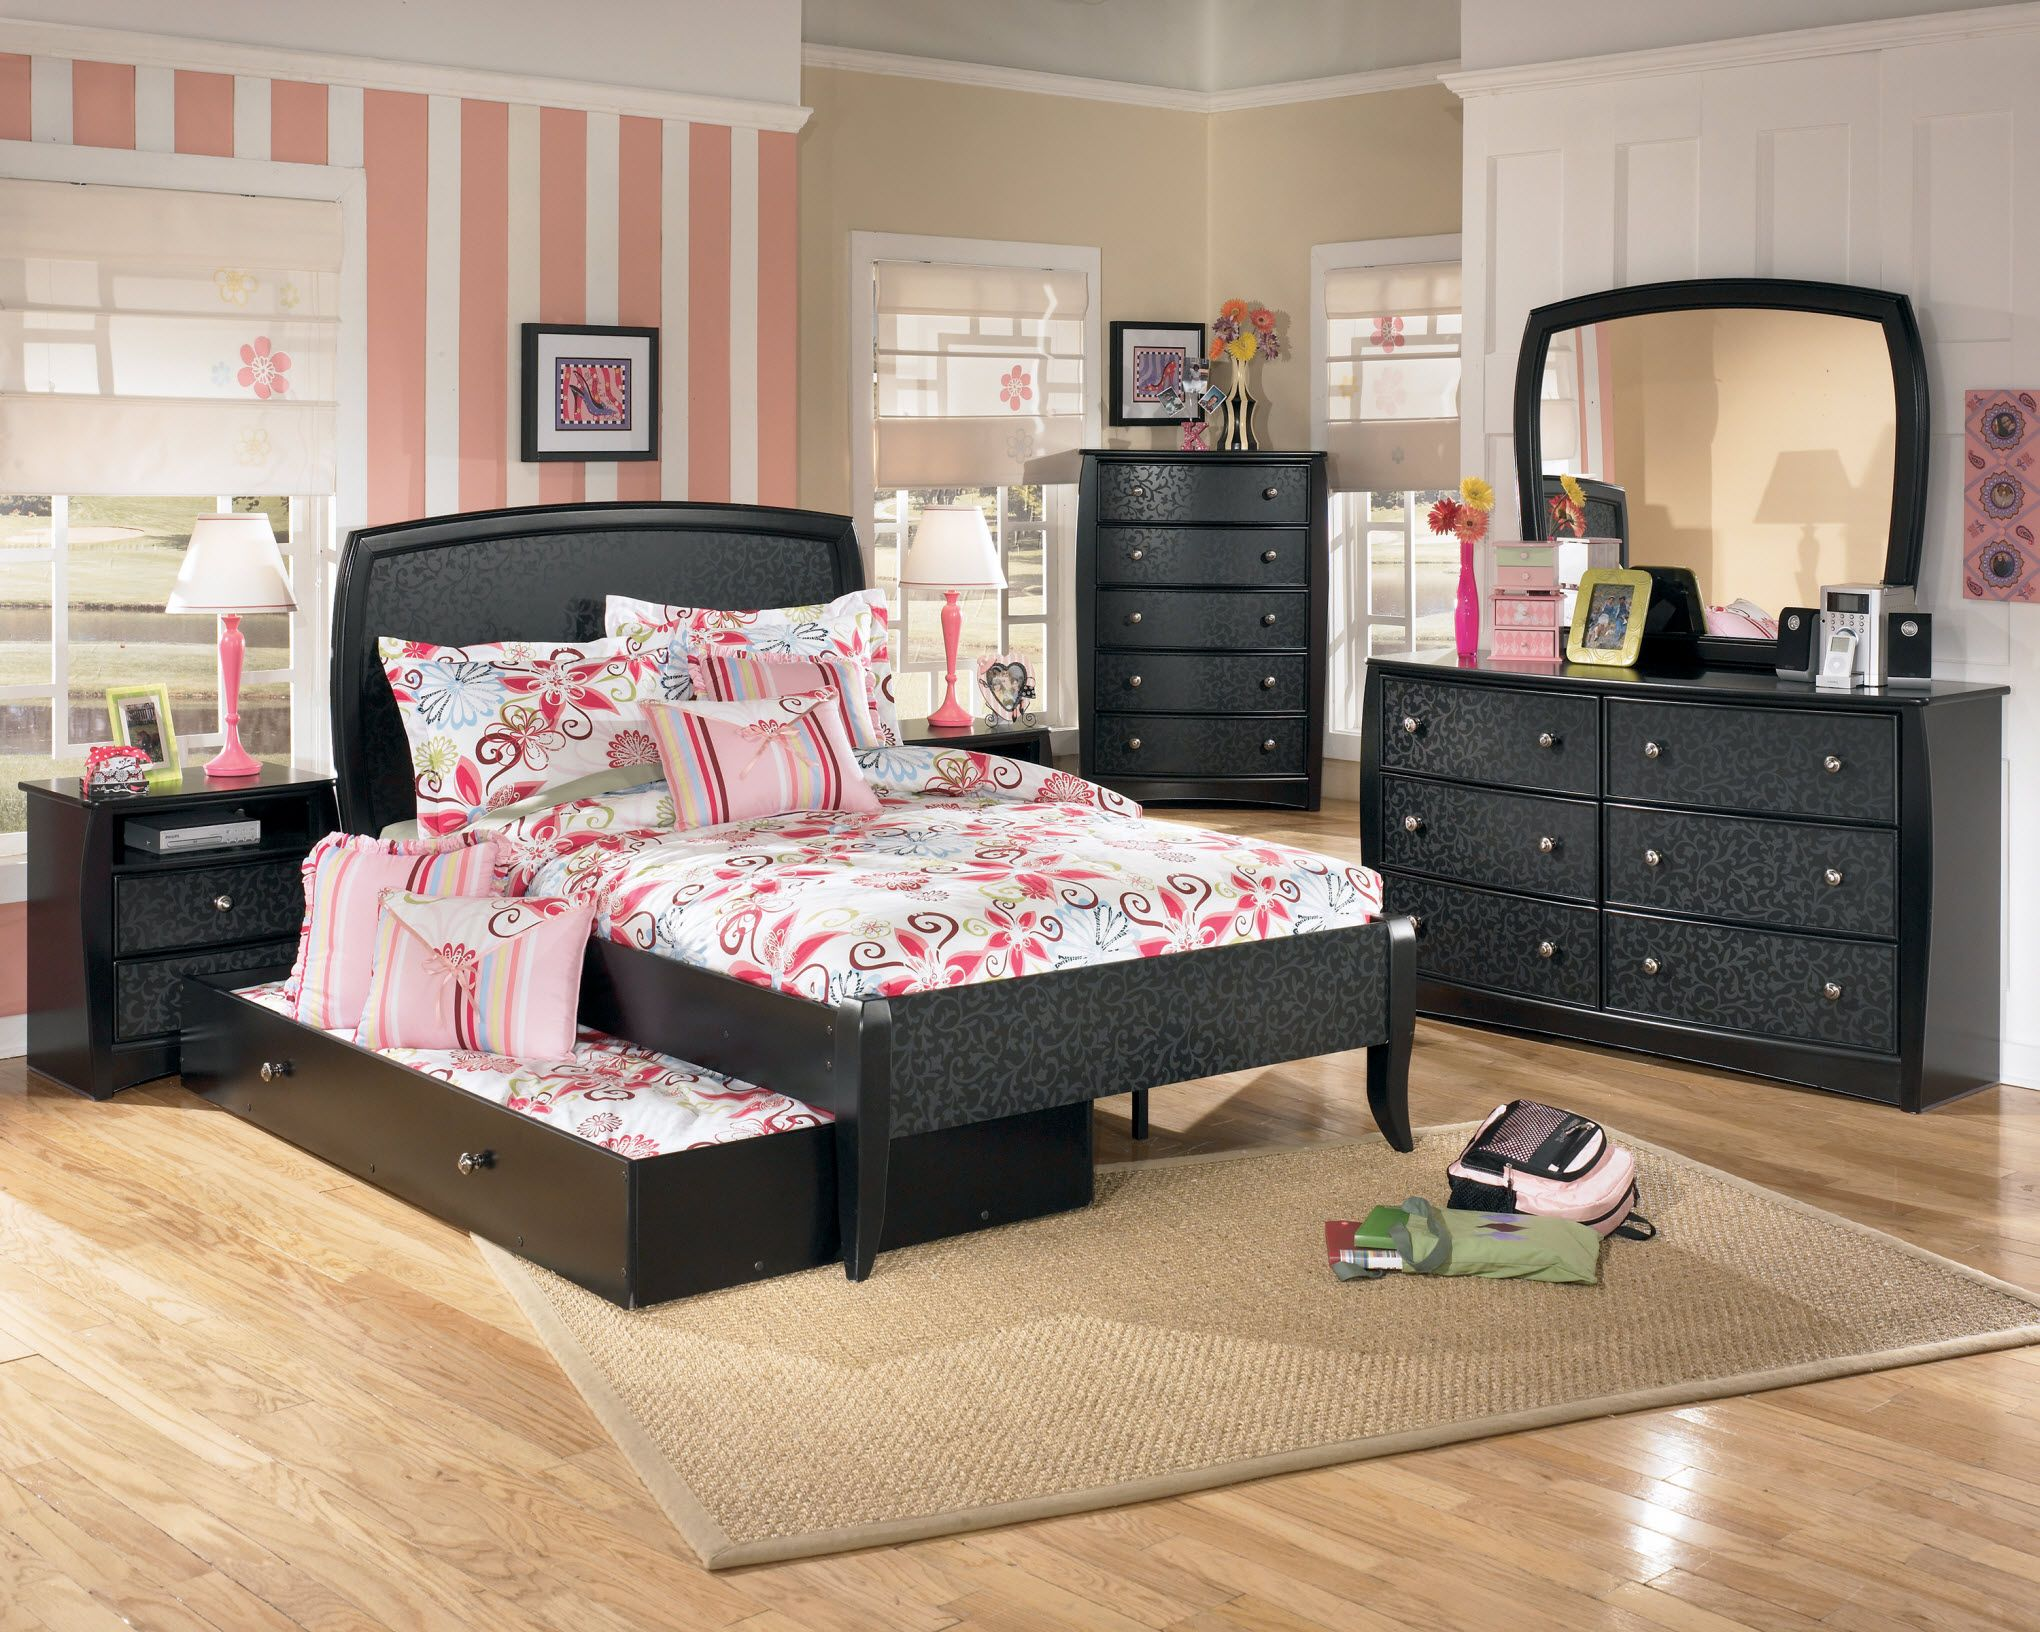 Cool Beds For Teens. Bedroom King Size Bed Sets Cool Beds ...